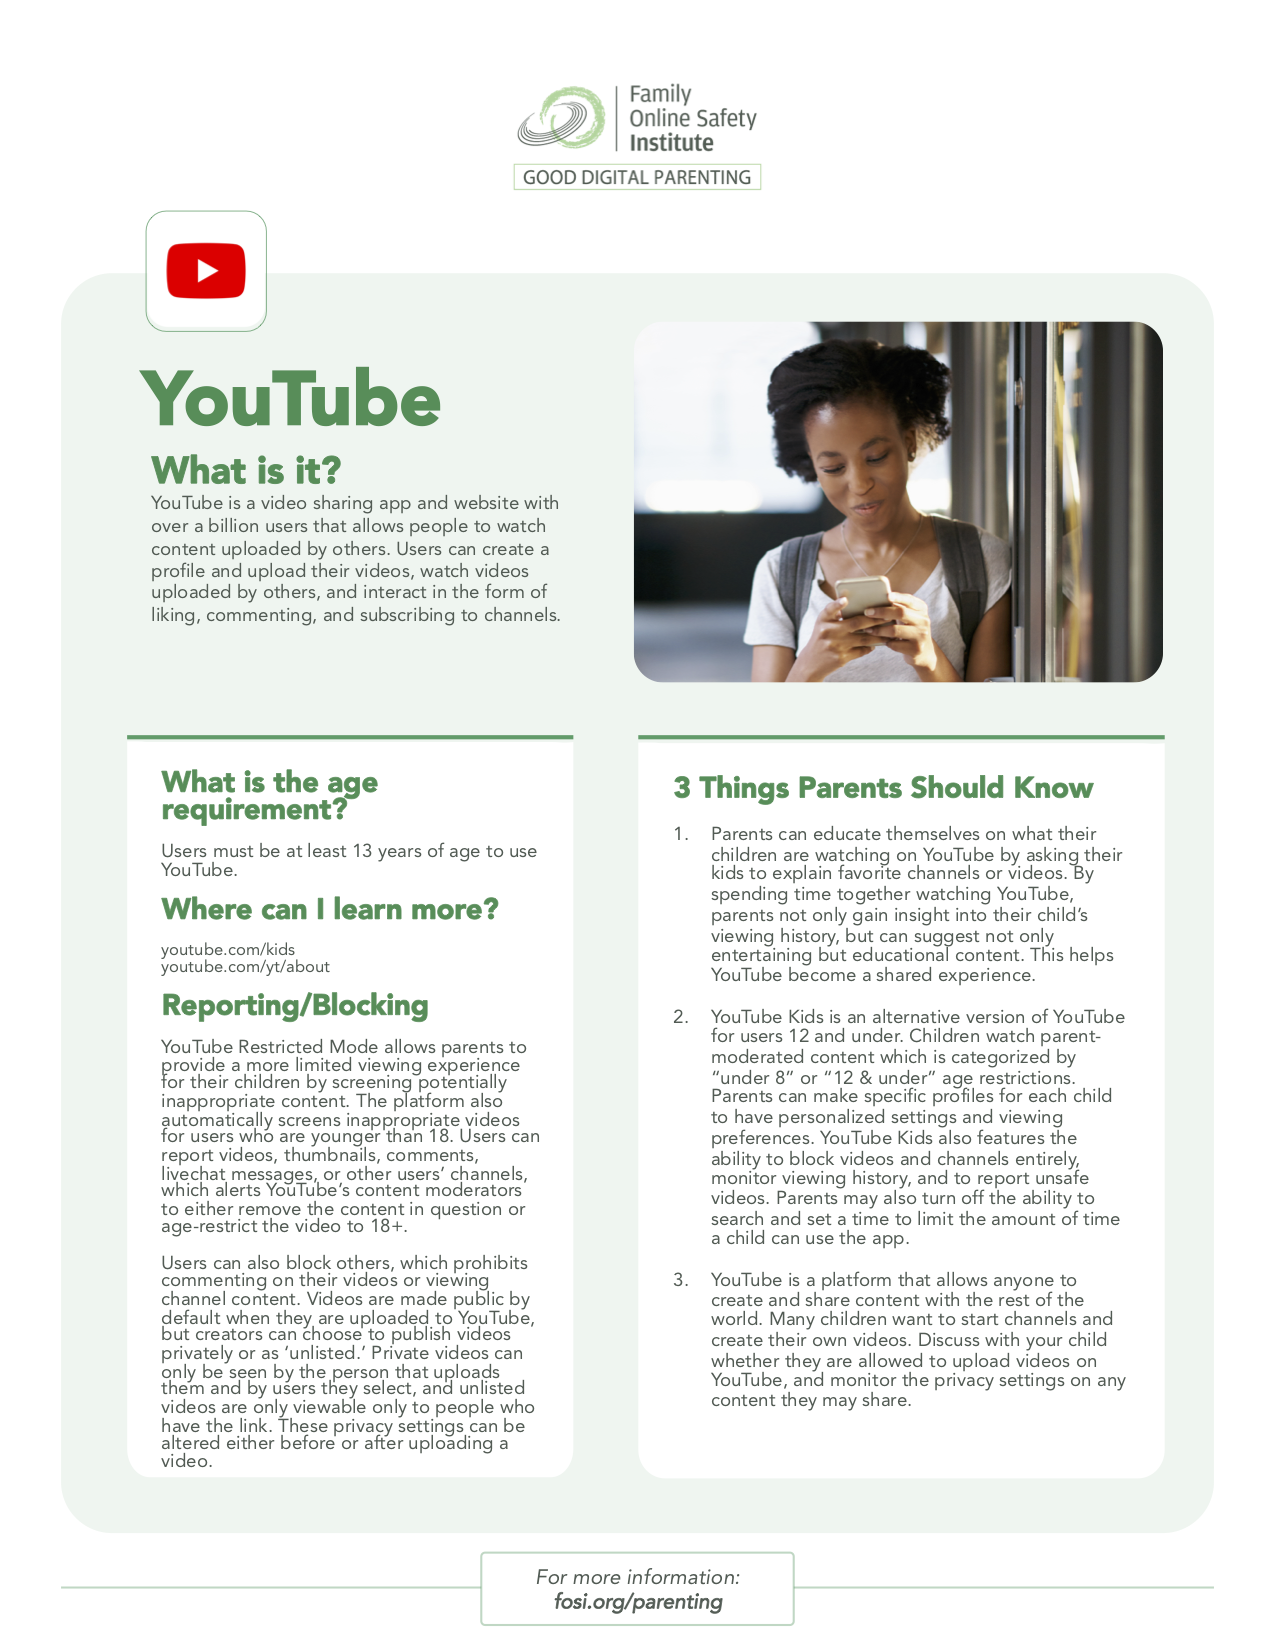 Good Digital Parenting App Tip Sheet What is YouTube